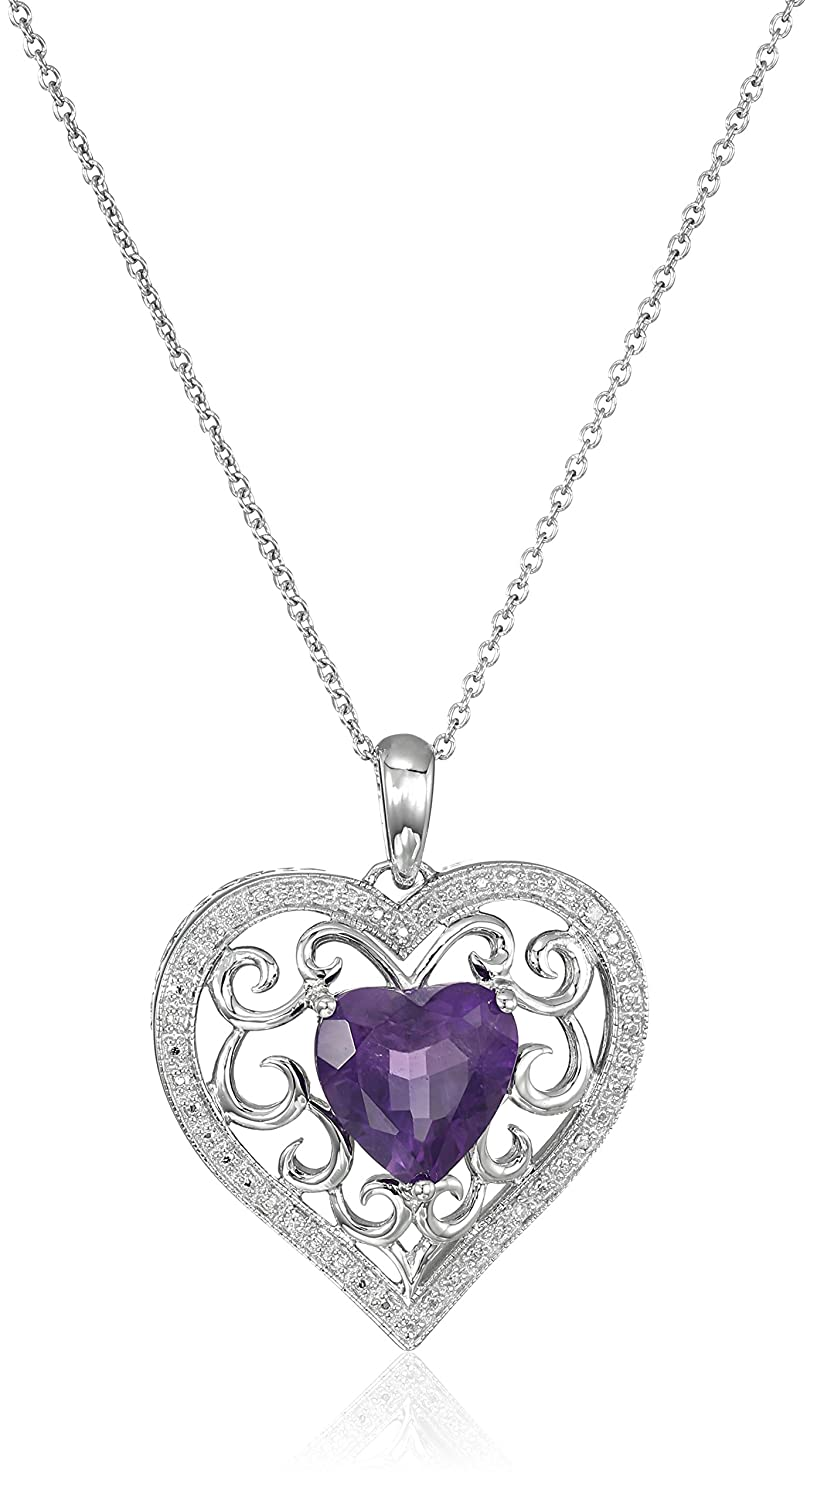 Sterling Silver Diamond Heart Pendant Necklace, 18